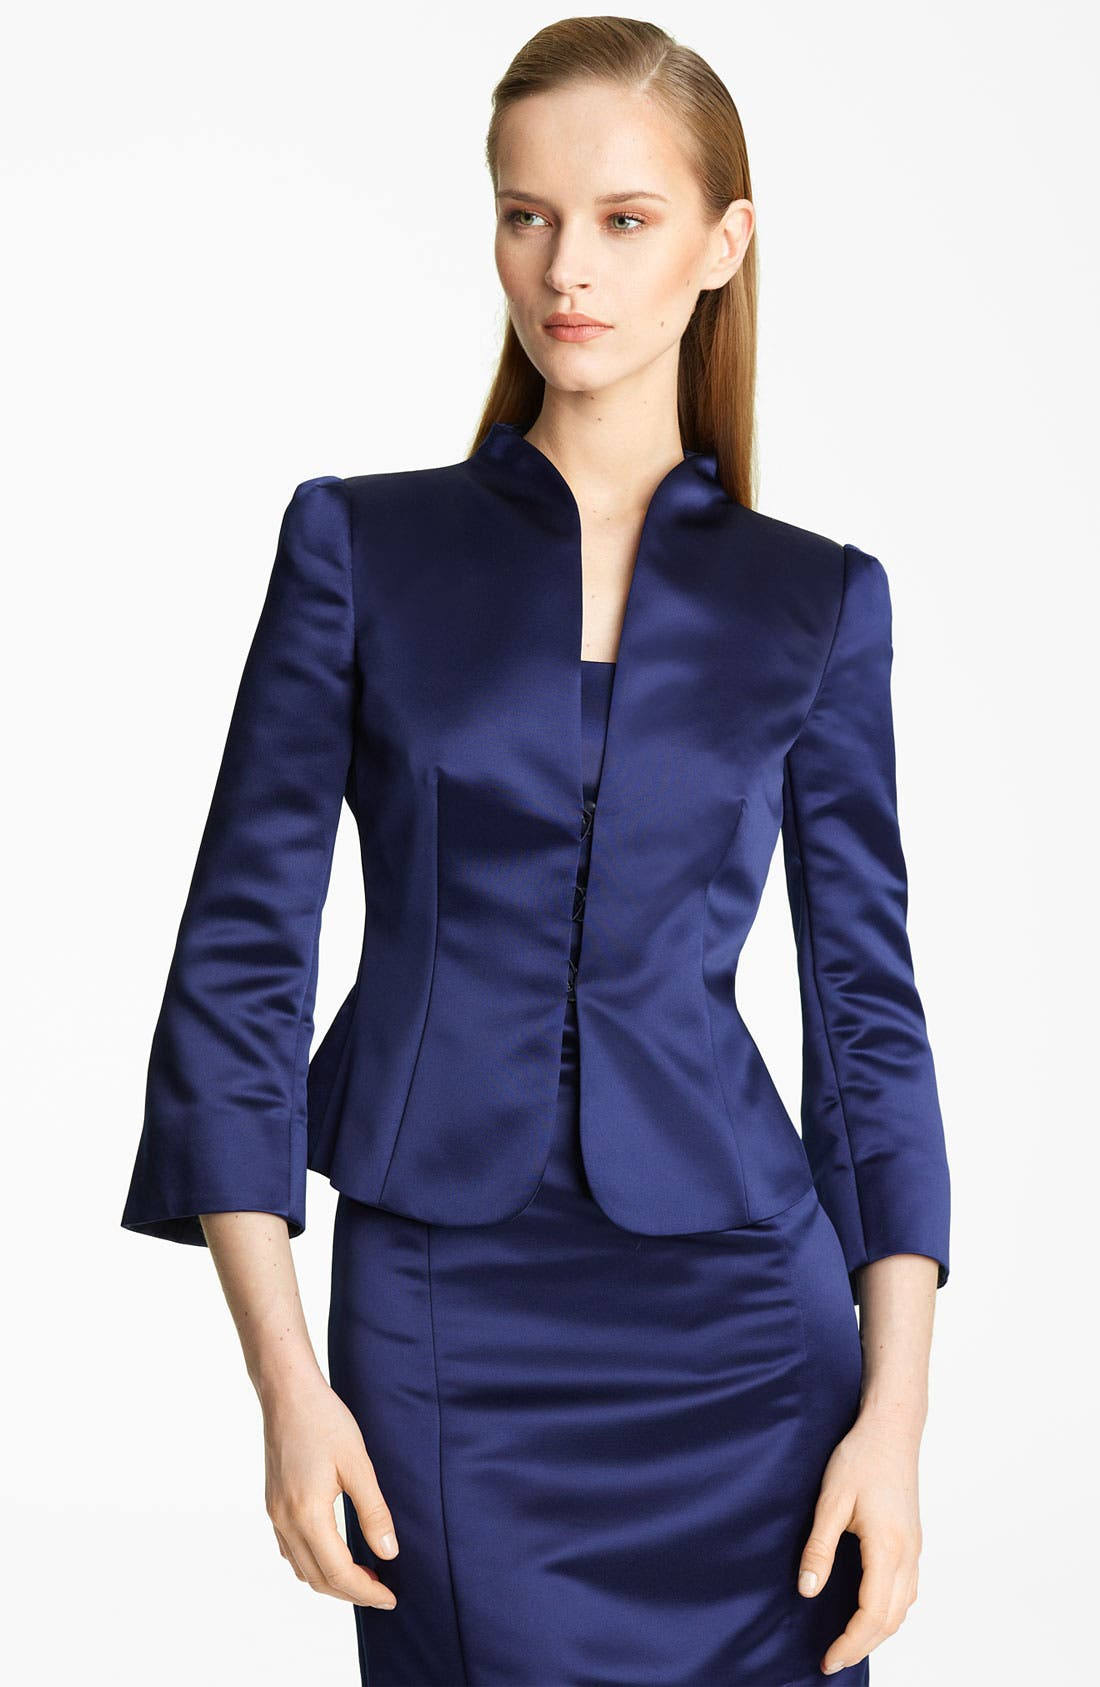 Alternate Image 1 Selected - Armani Collezioni Duchesse Satin Jacket